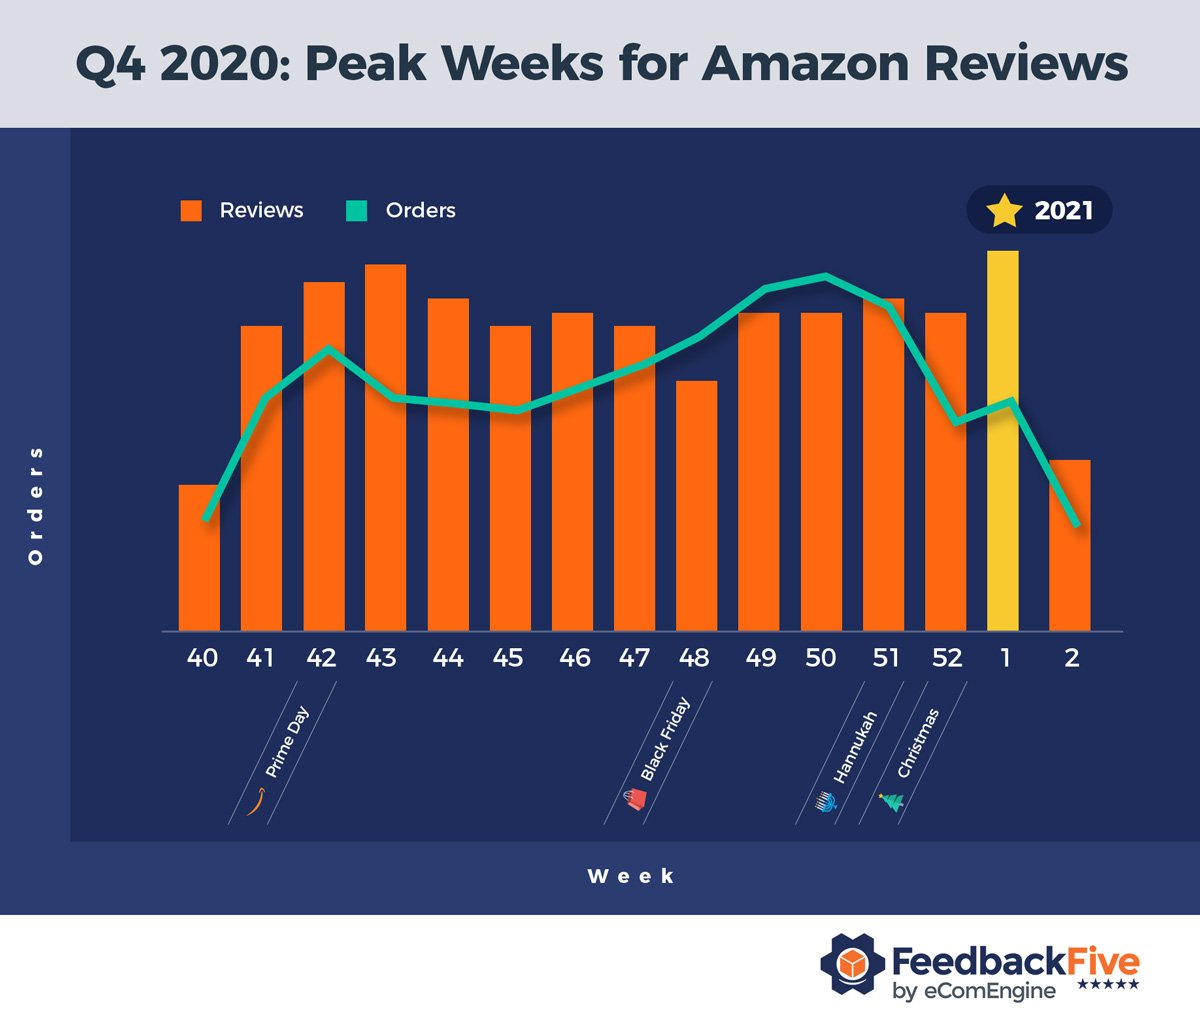 Chart showing Amazon reviews received by week in Q4 2020